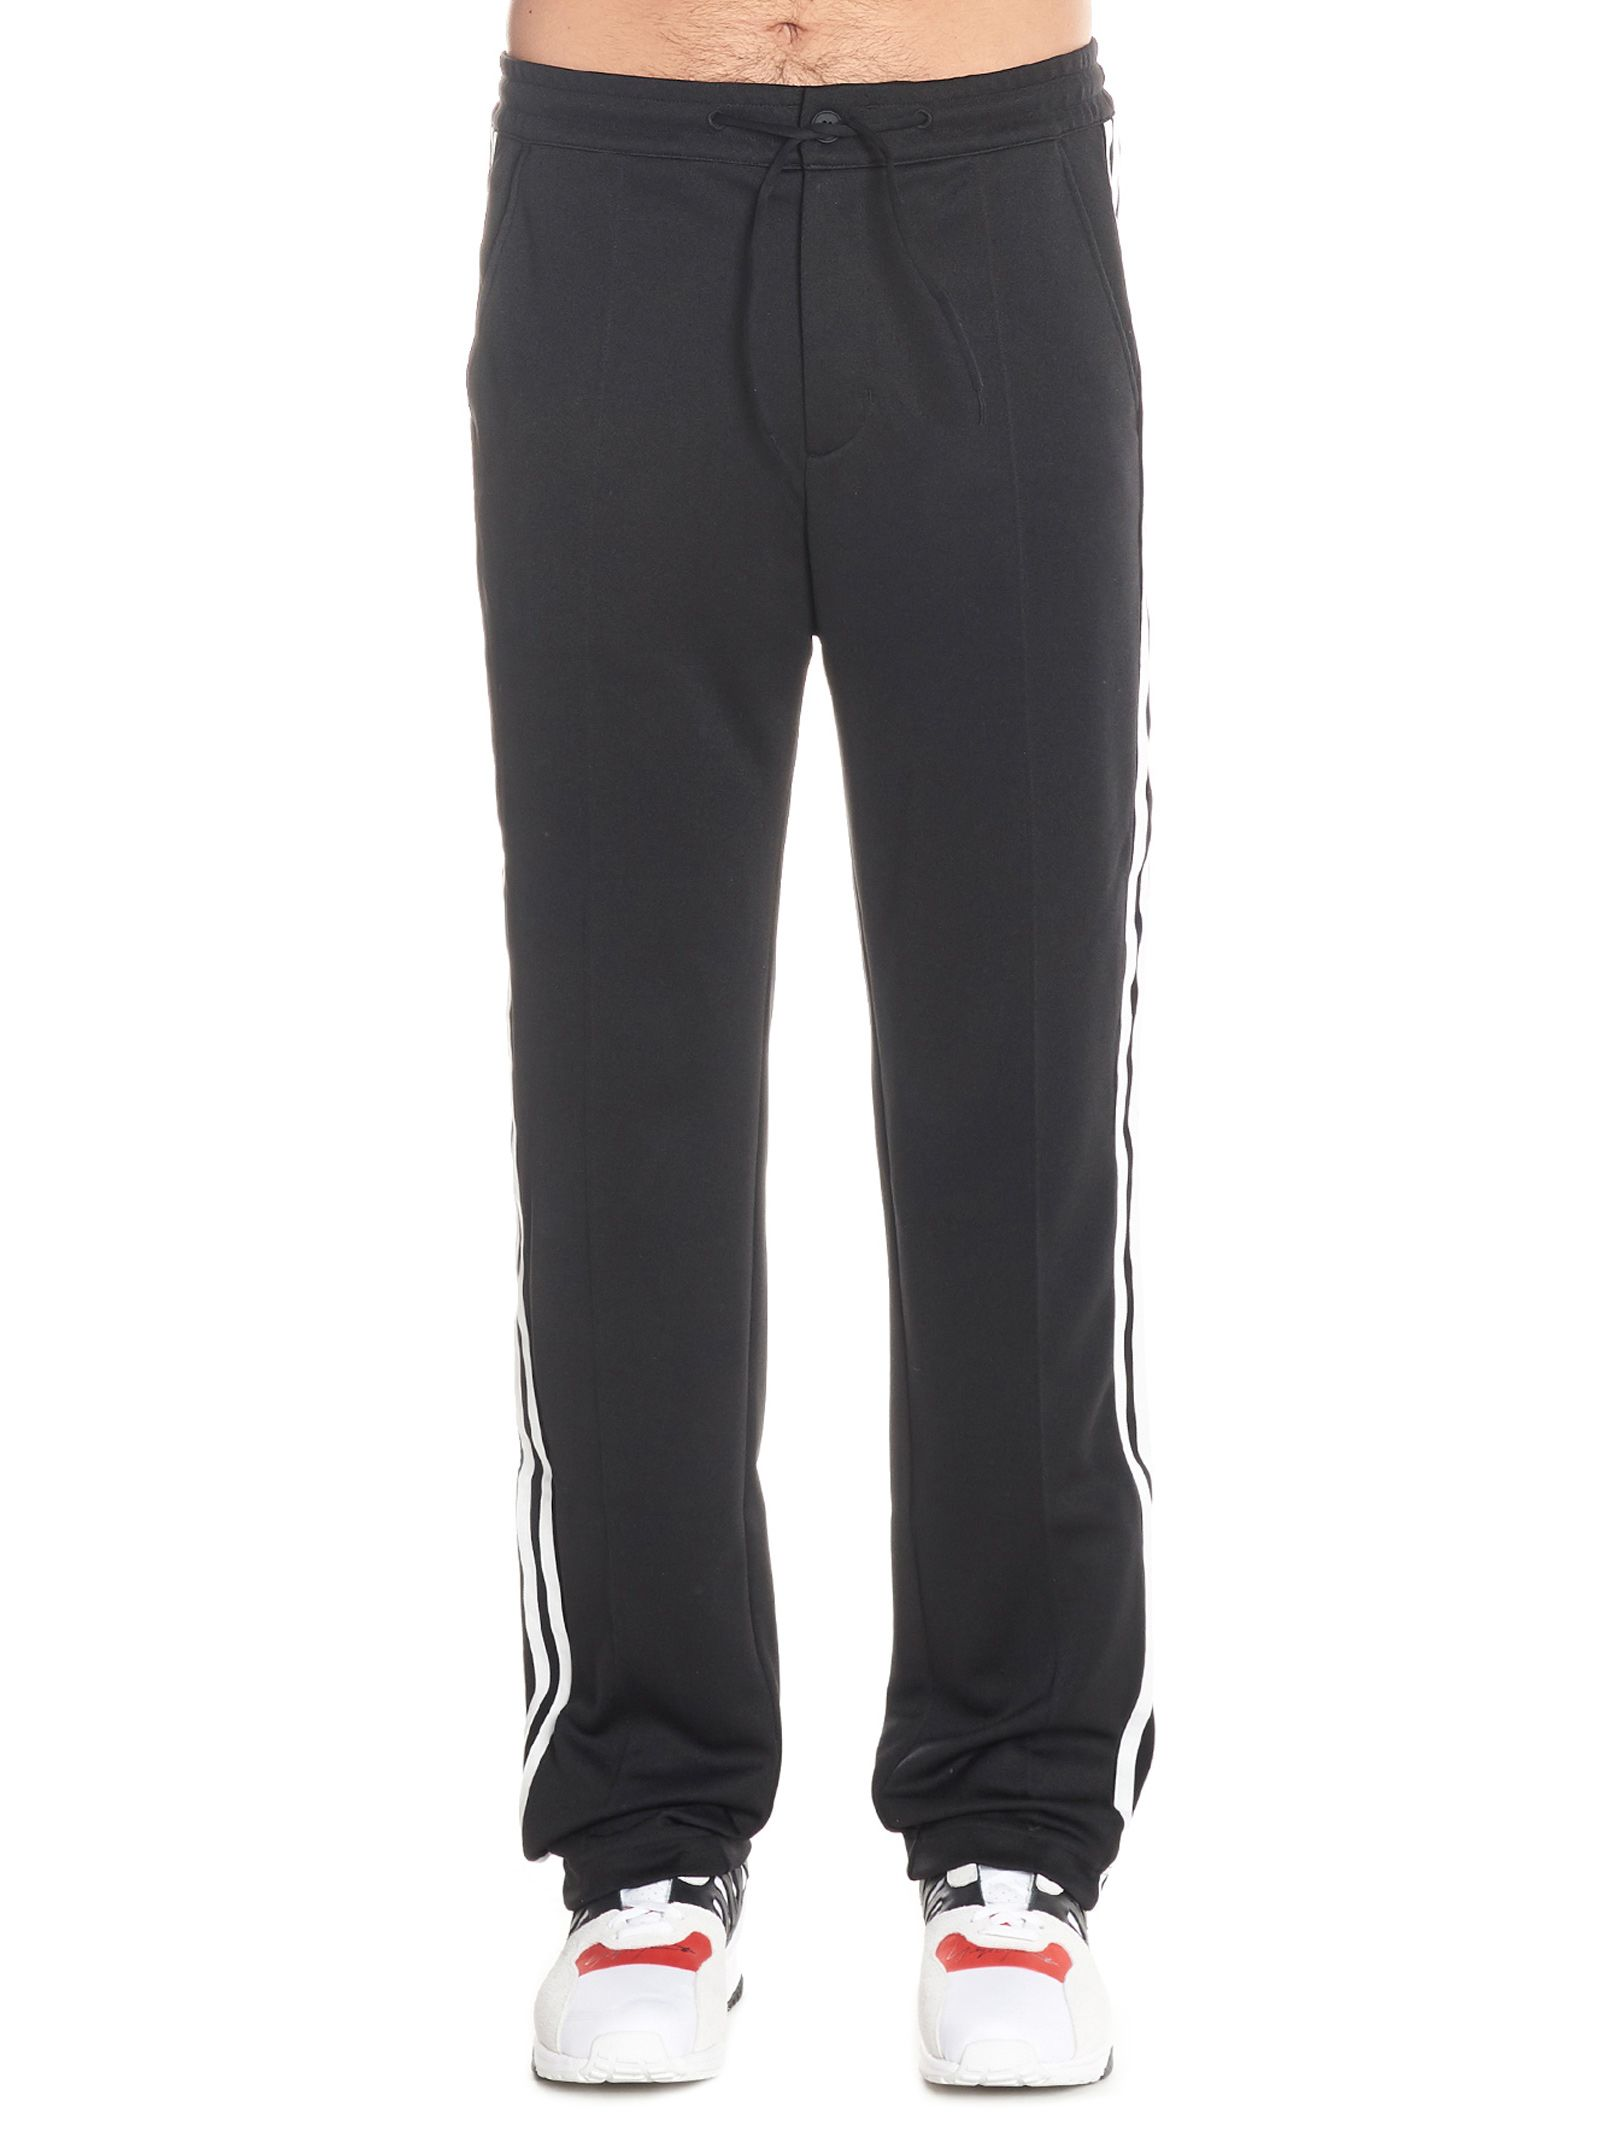 0ae2baaef Y-3 Y-3  three Stripes Track Pant  Pants - Black - 10815240